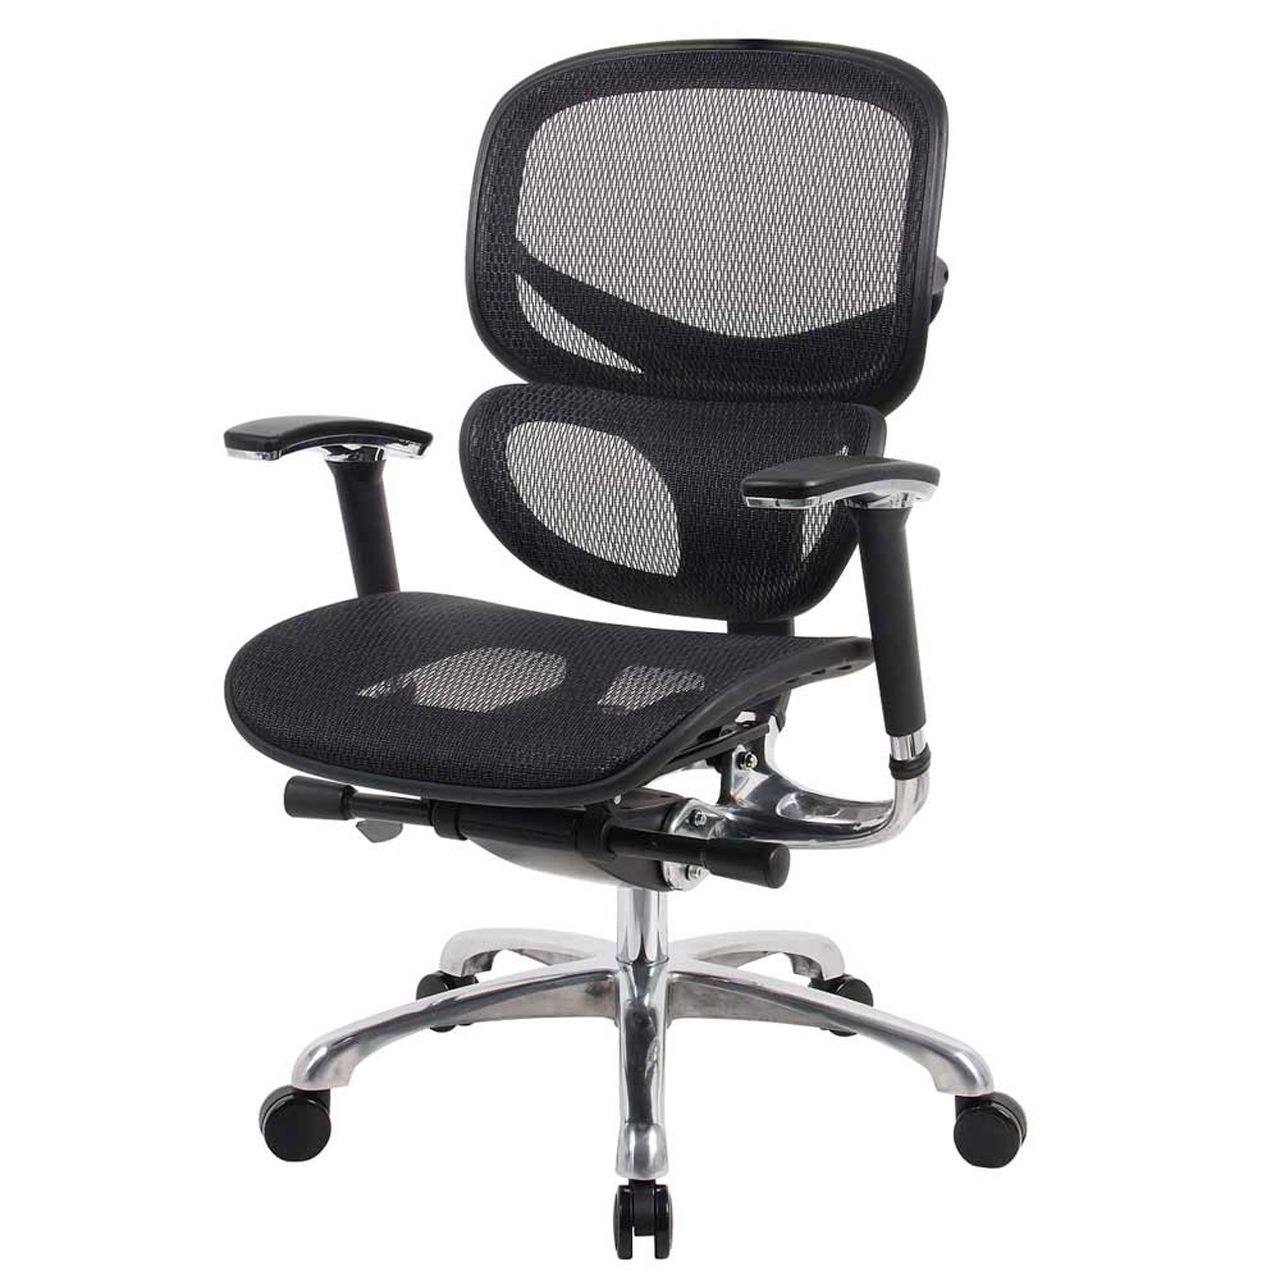 Awesome Ergonomic Chair Or Desk http//www.lookmyhomes